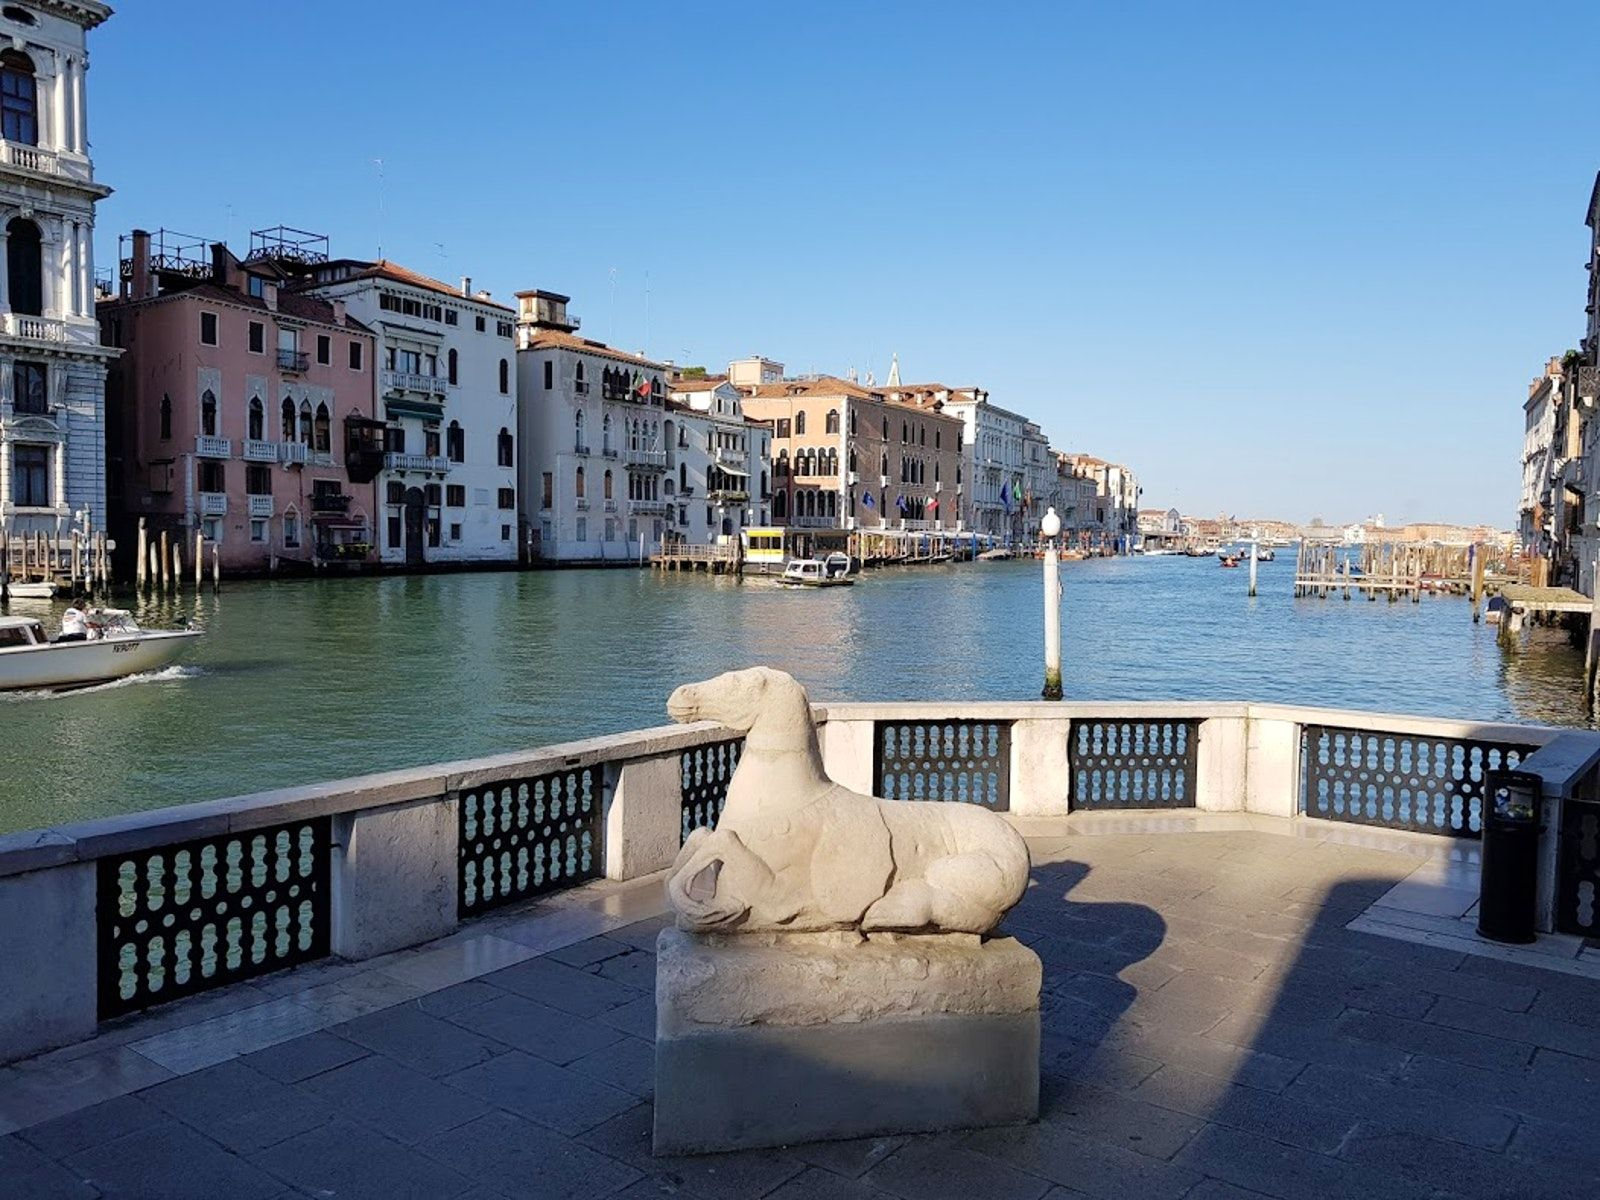 The Museums Of Venice Peggy Guggenheim Collection Peggy Guggenheim Guggenheim Venice